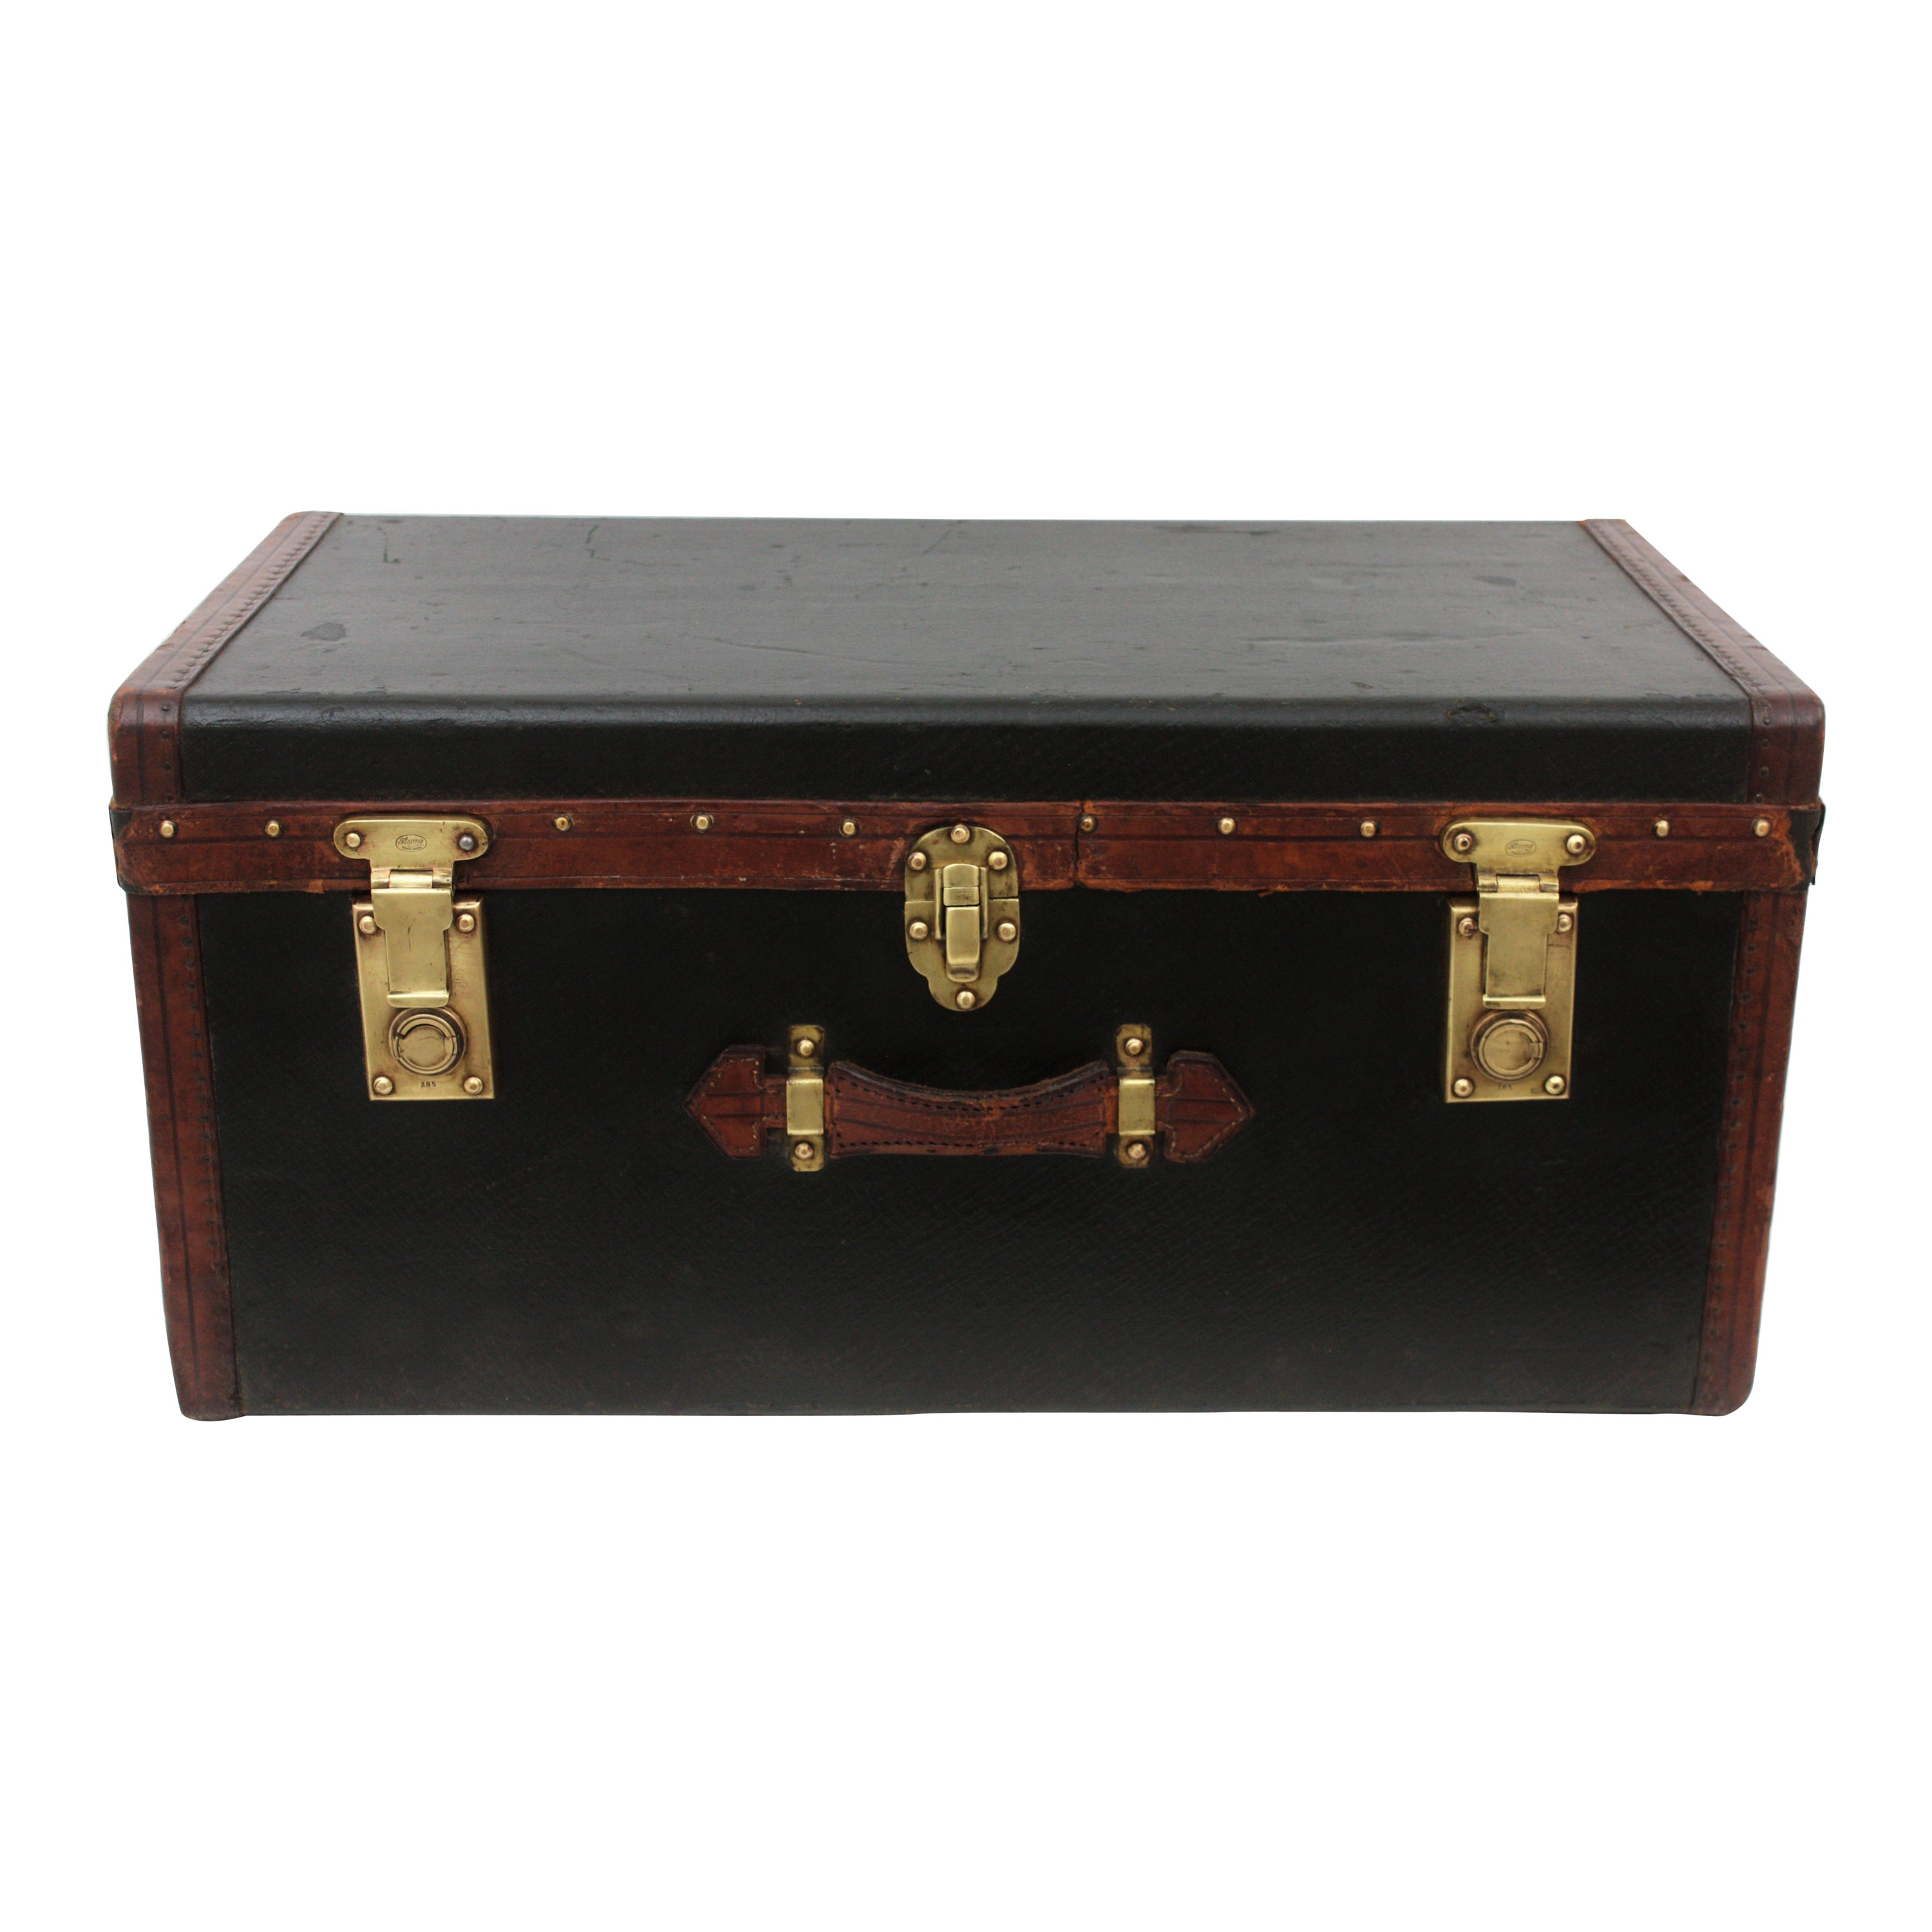 Late 19th Century English Leather and Canvas Trunk with Brass Locks